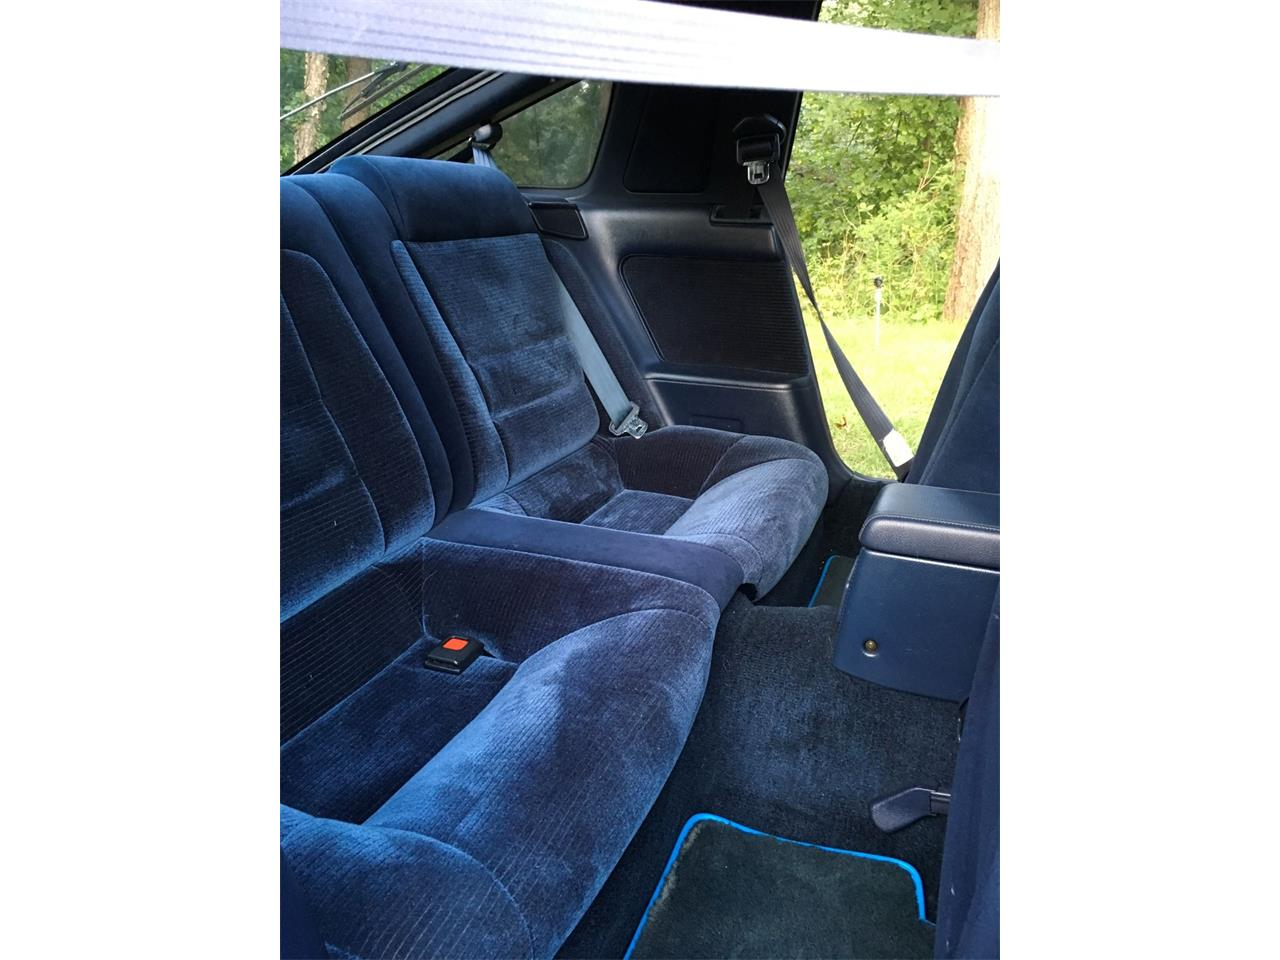 Large Picture of '89 Supra located in Stockbridge Michigan - $16,000.00 Offered by a Private Seller - OO0W